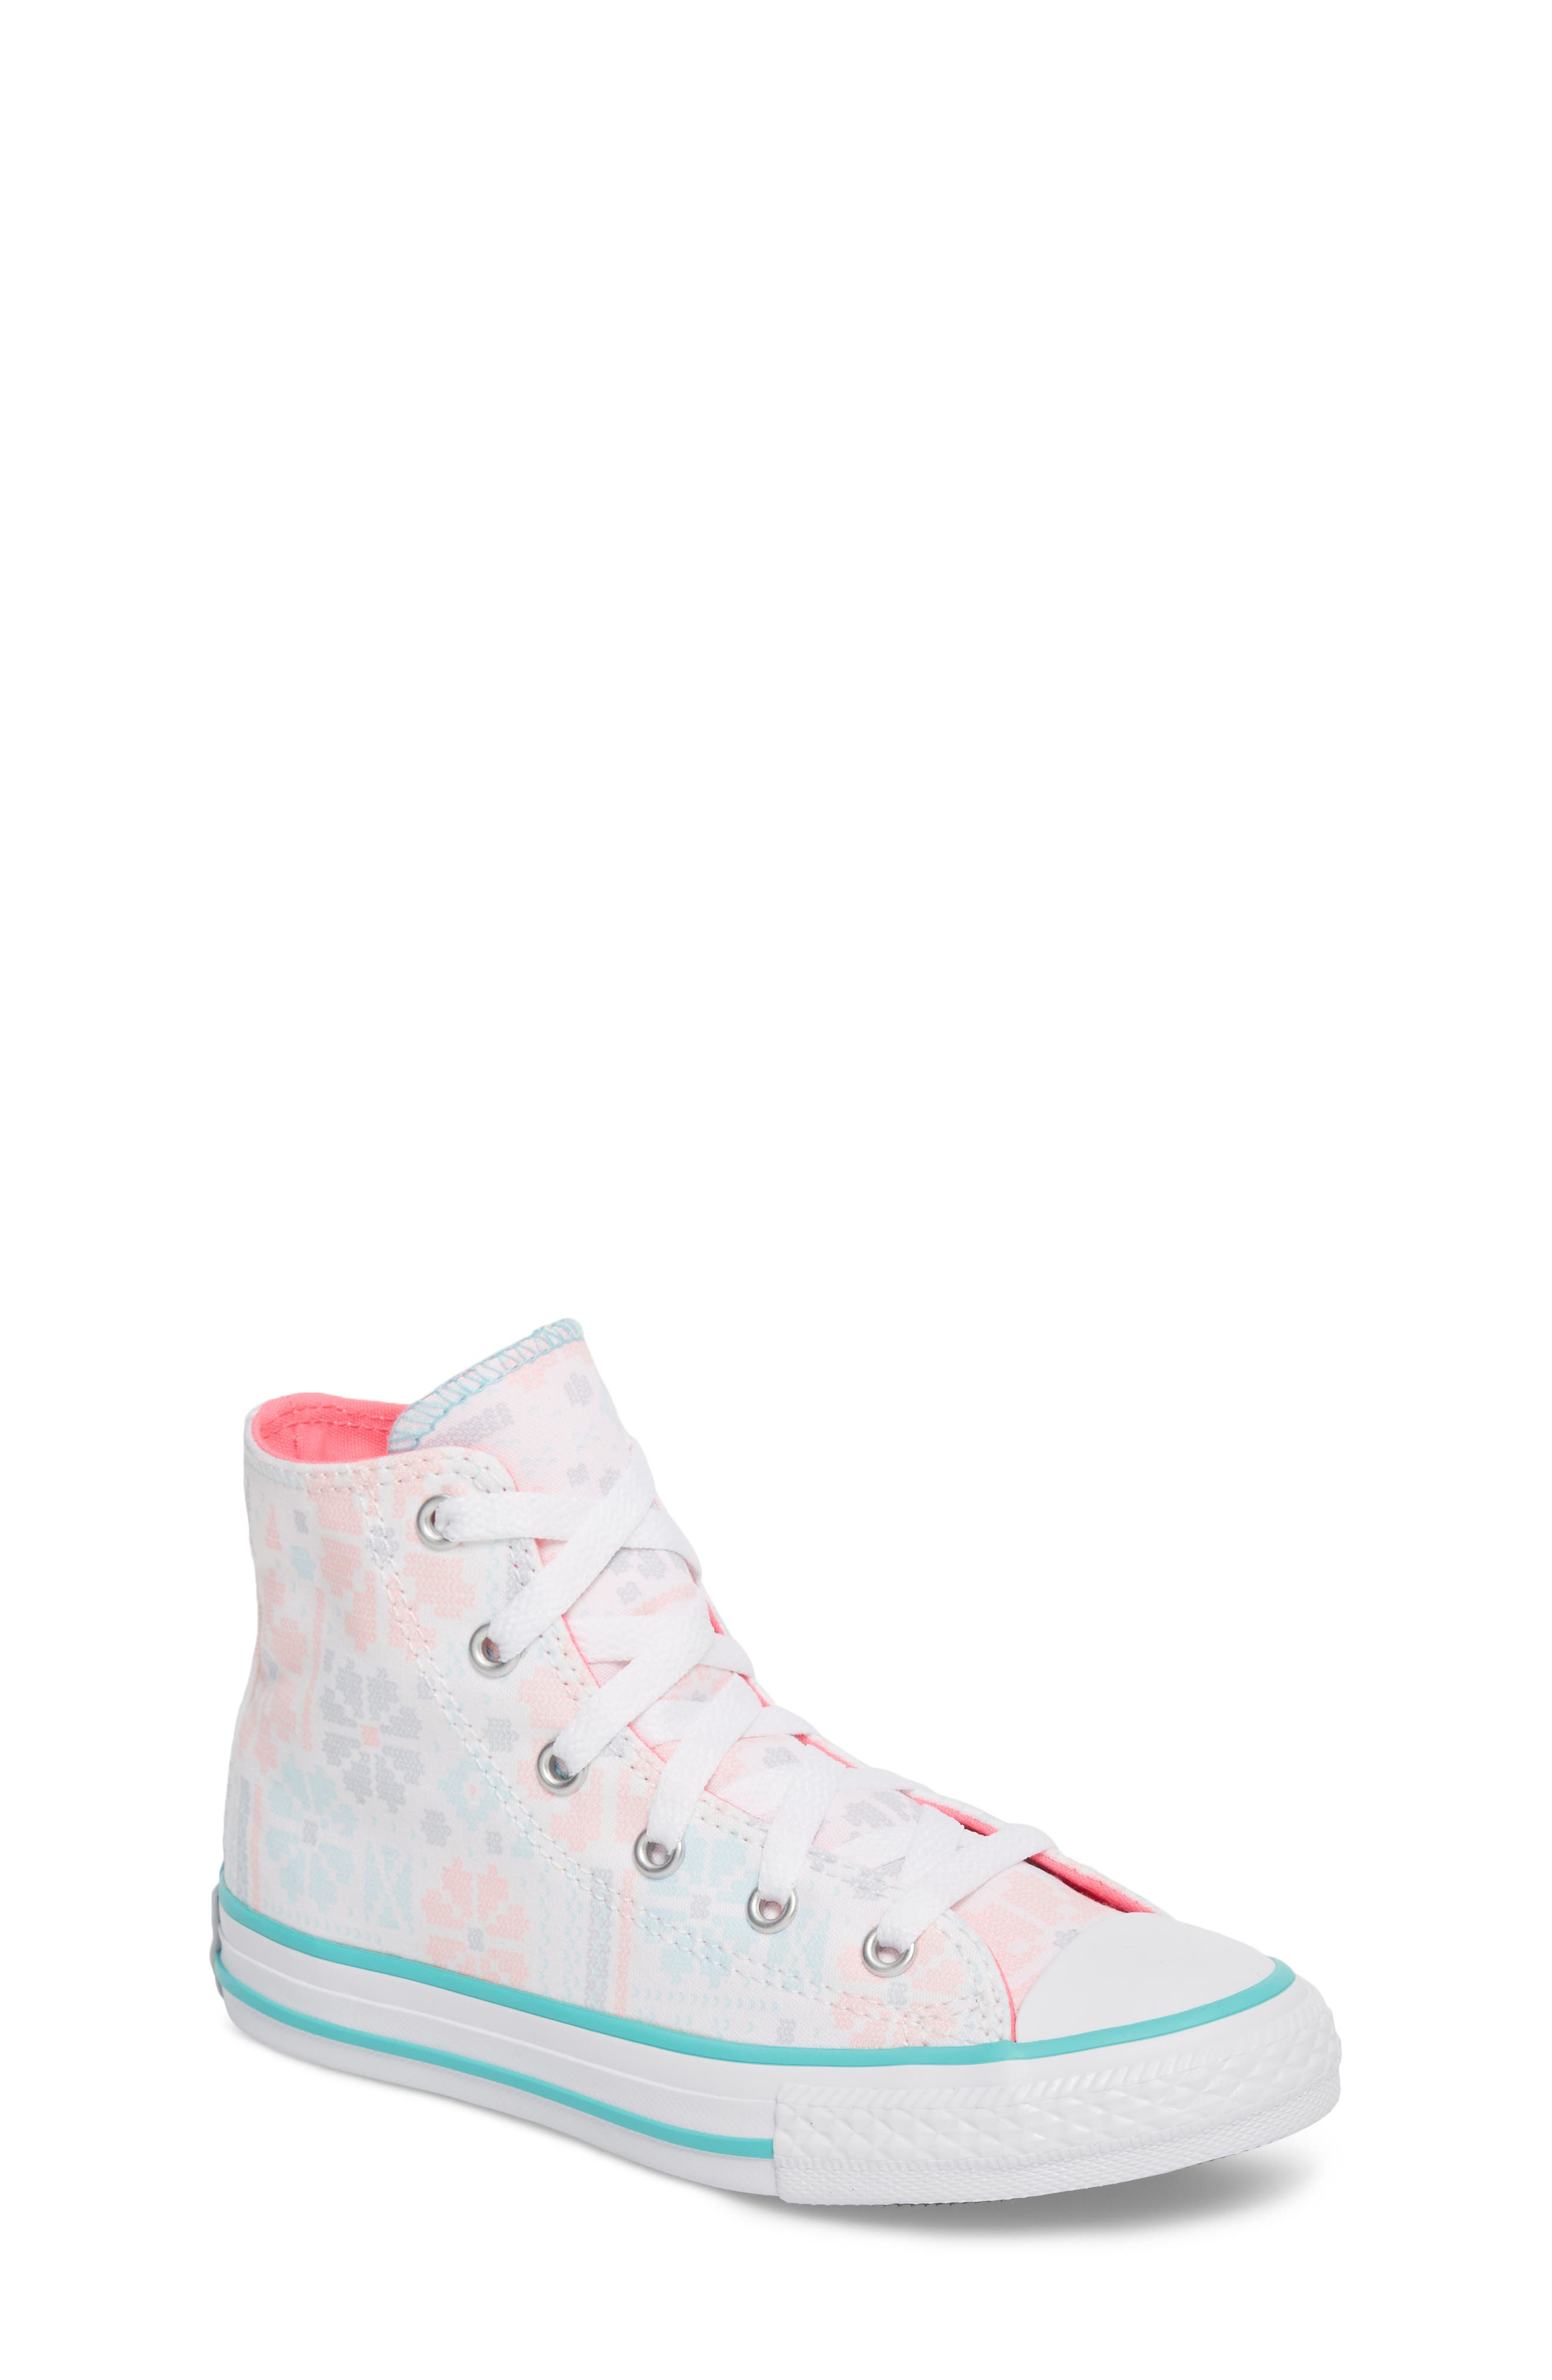 Chuck Taylor<sup>®</sup> All Star<sup>®</sup> High Top Sneaker,                         Main,                         color,